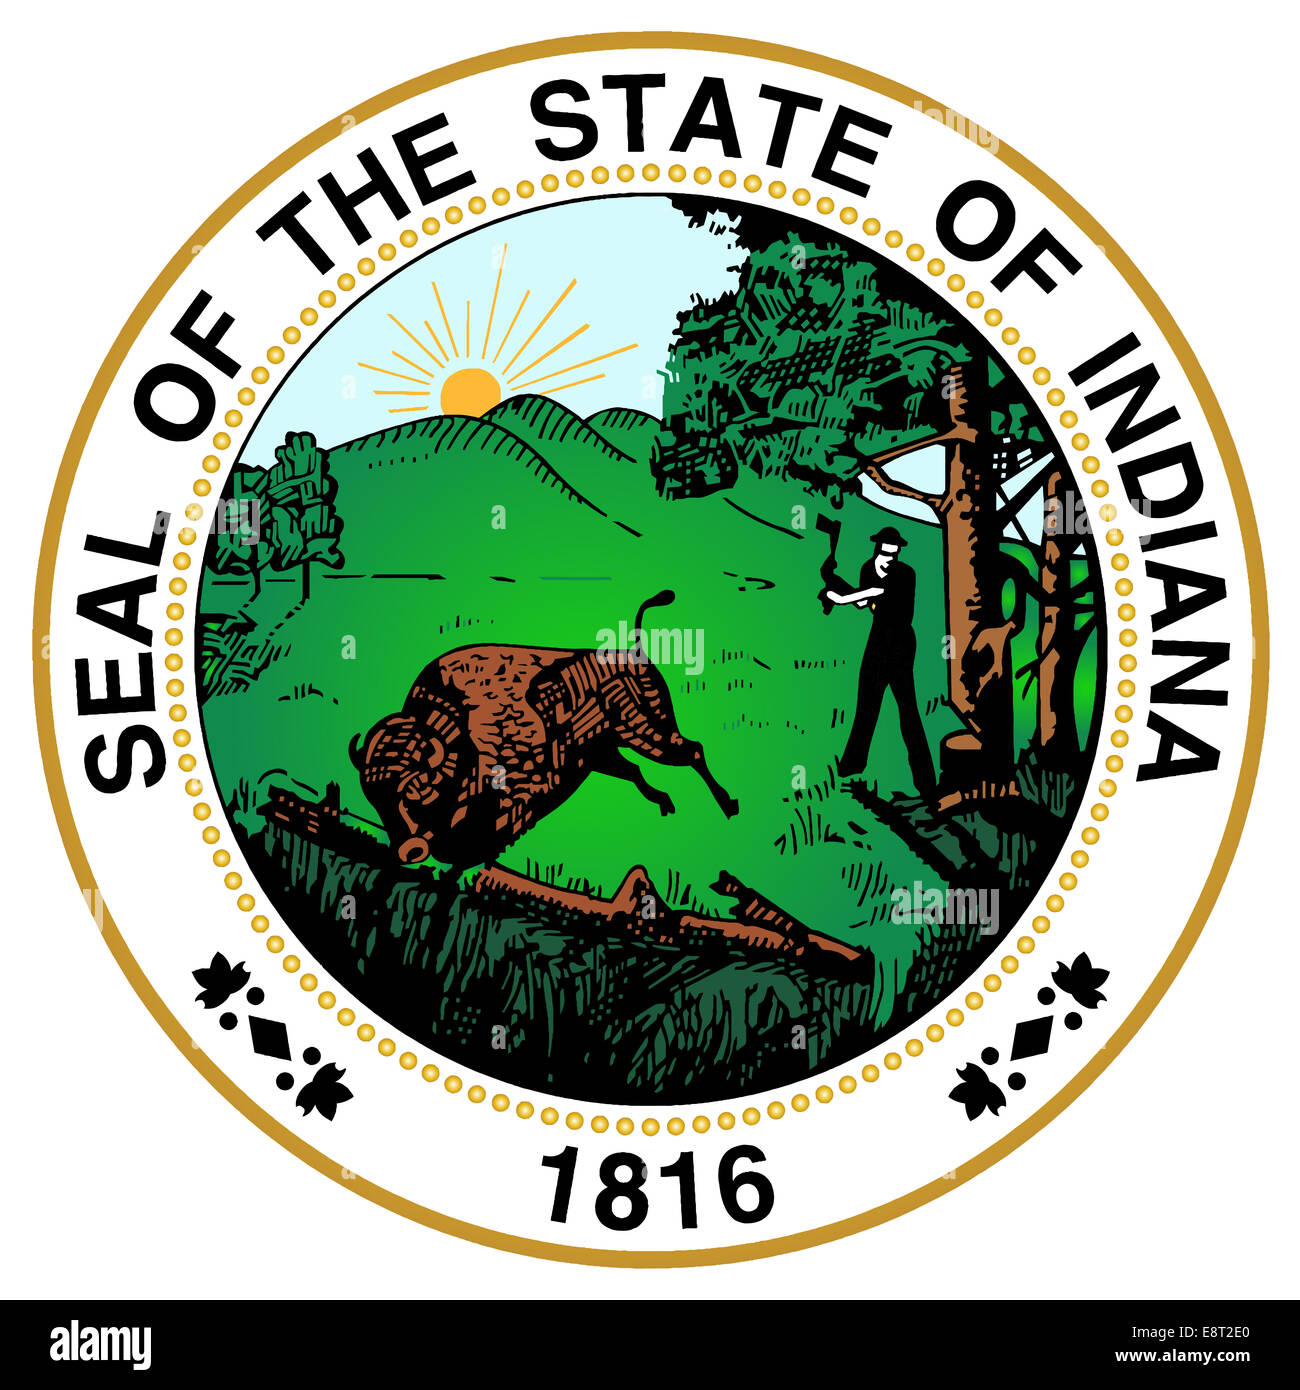 The great seal of the state of Indiana - Stock Image